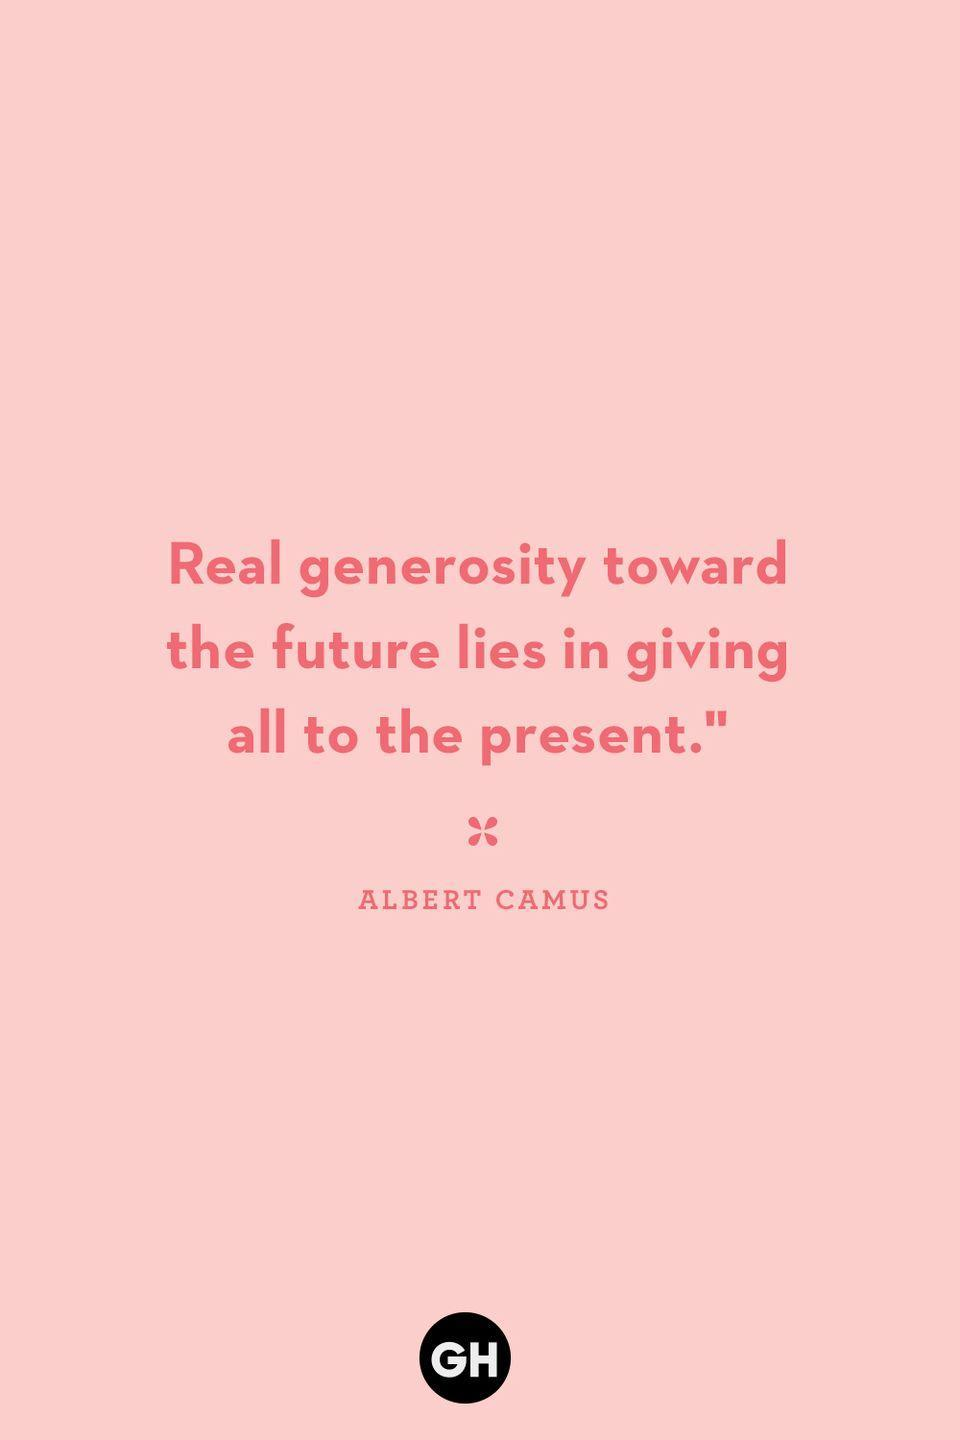 <p>Real generosity toward the future lies in giving all to the present.</p>